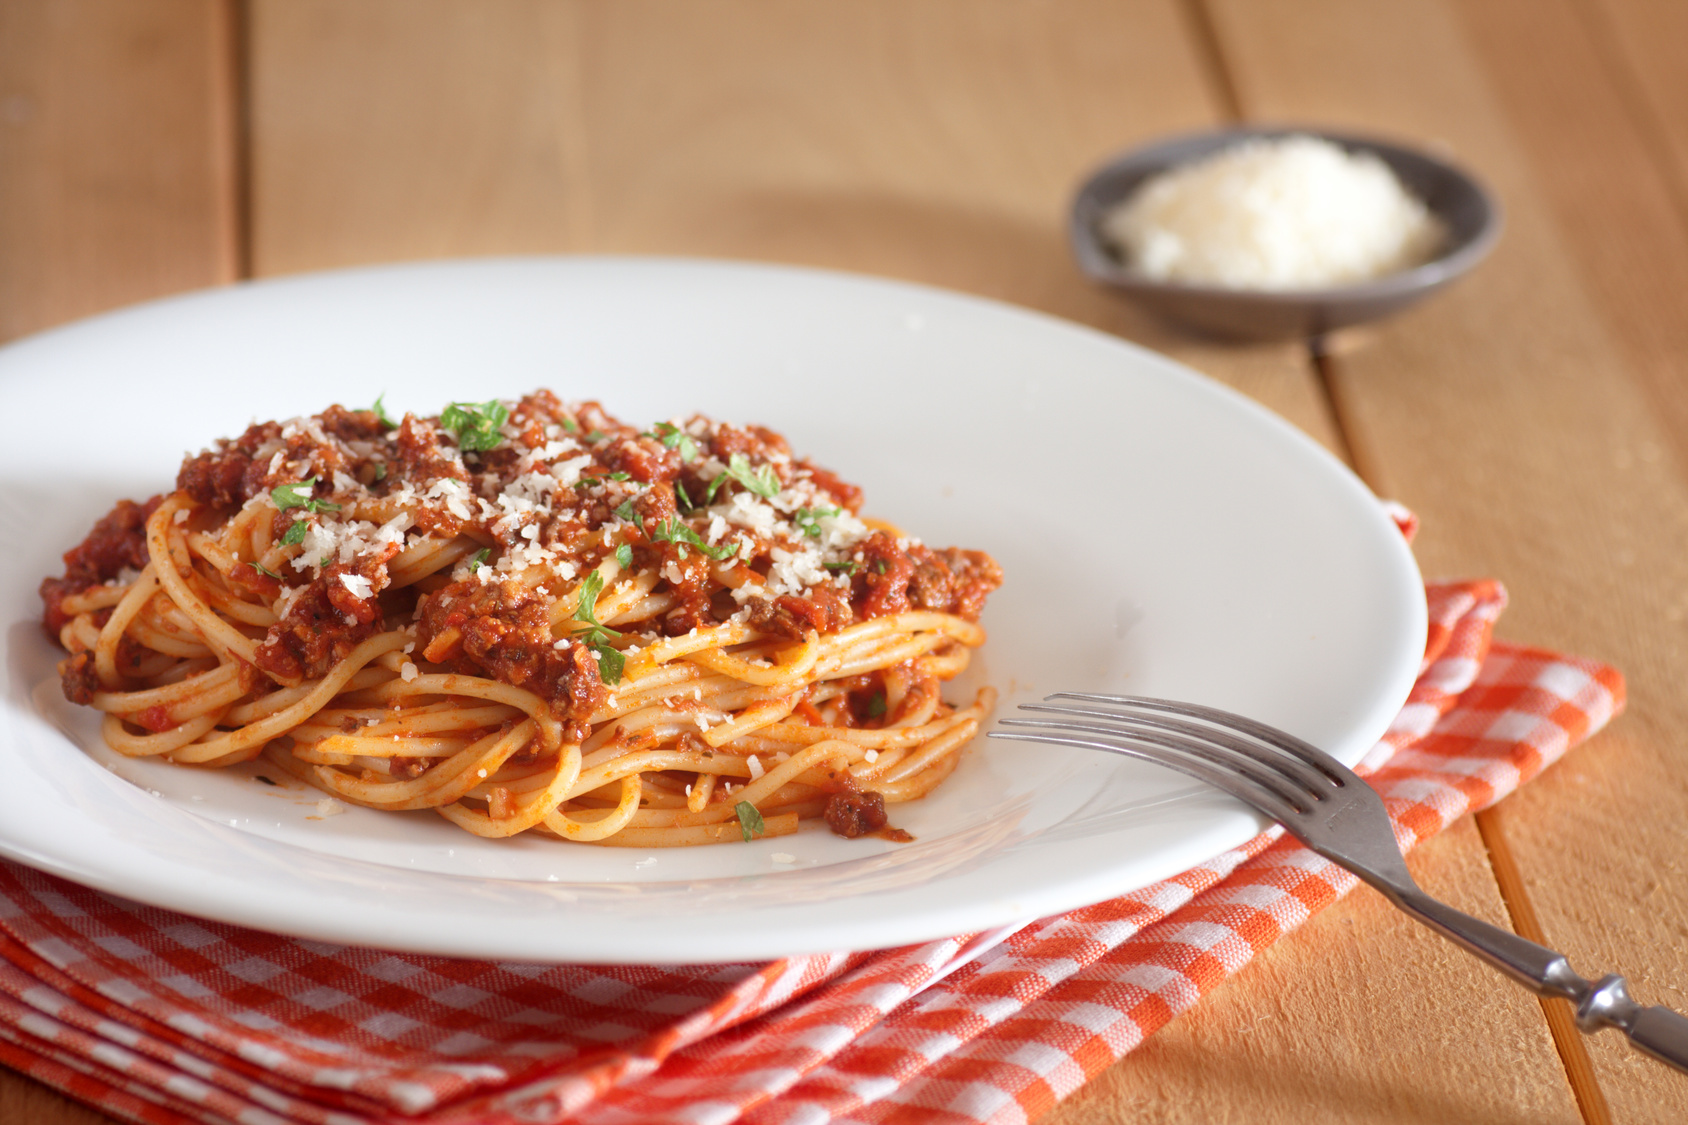 Super Simple, Fast, Budget Friendly Spaghetti Bolognese